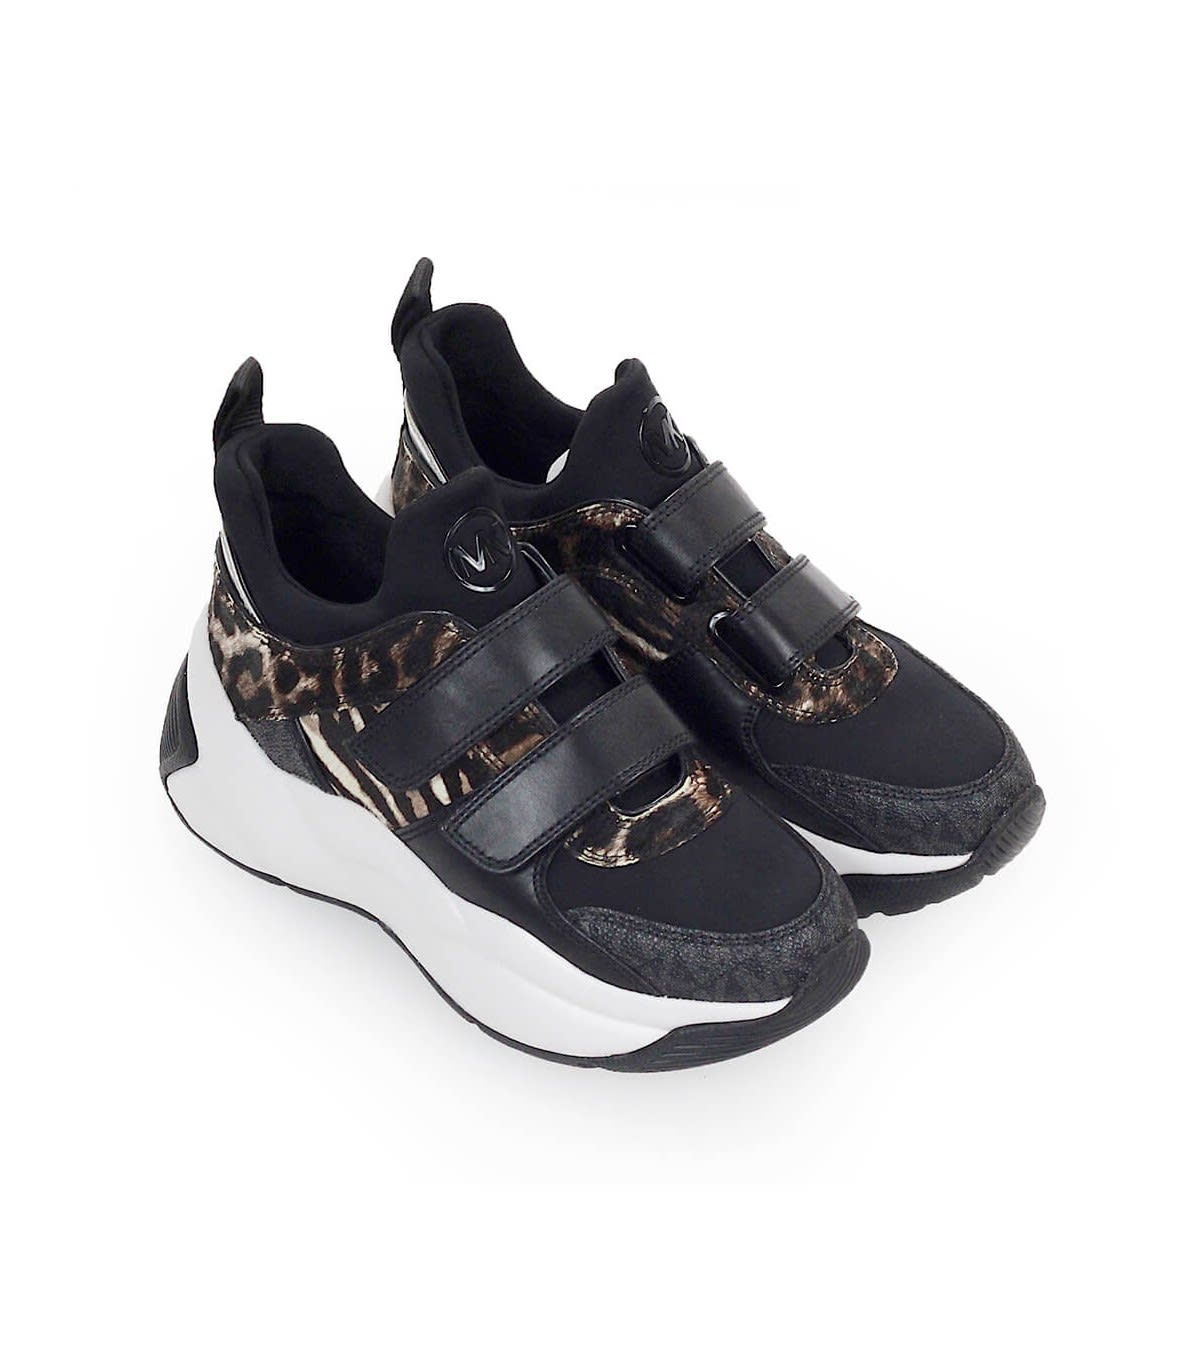 Best Authentic Michael Kors Keeley Trainer Animalier Sneaker - Great Deals